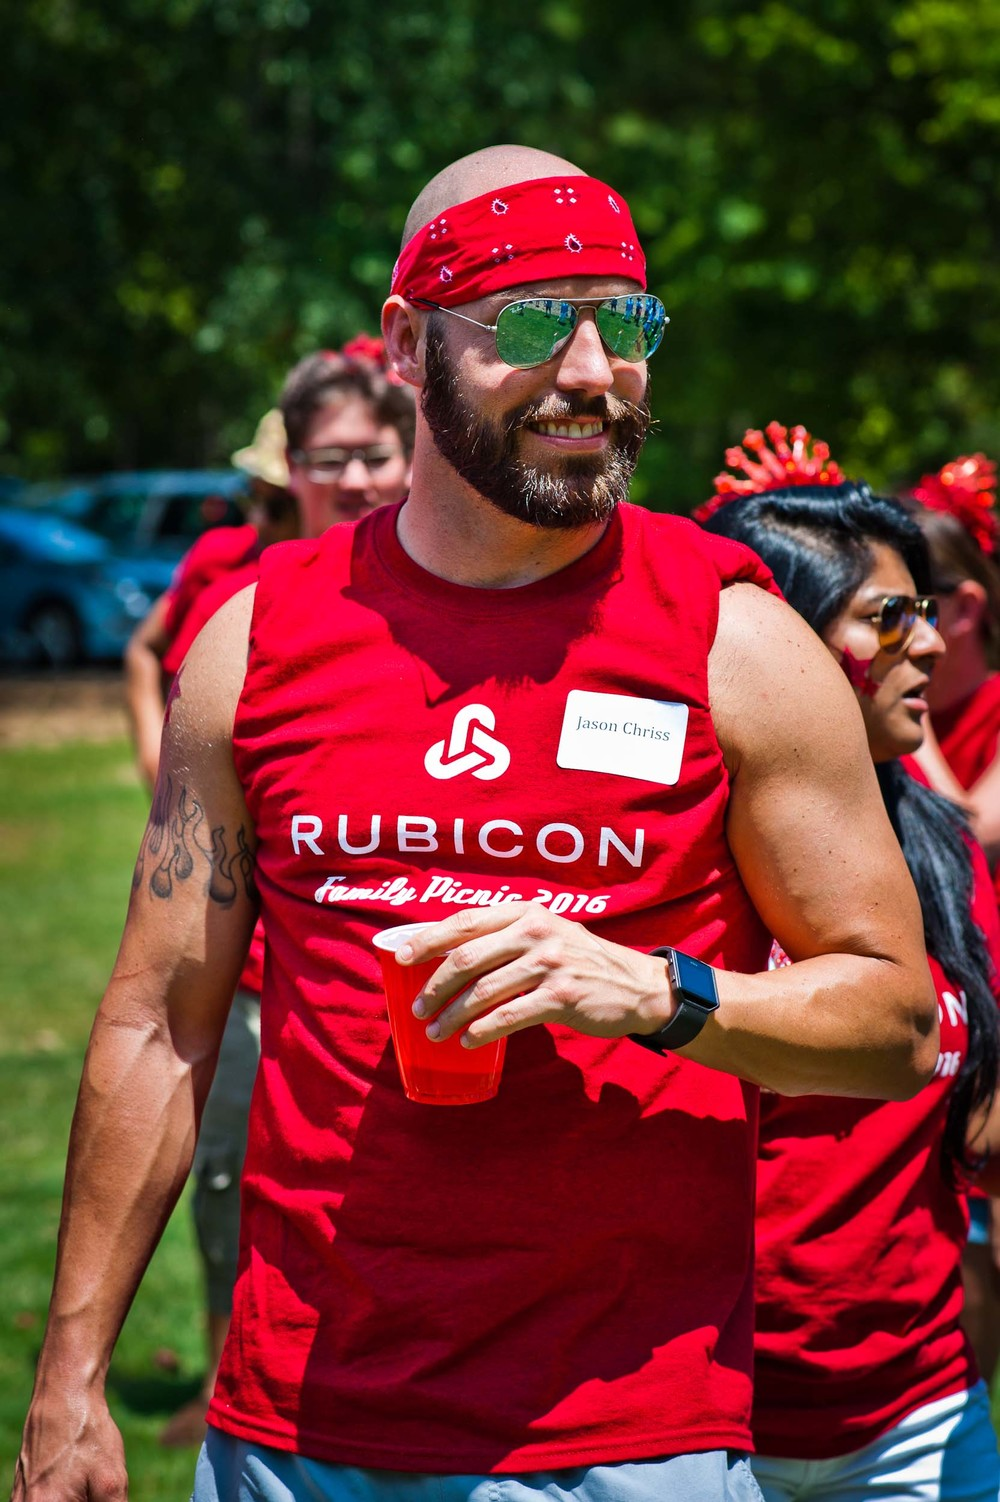 Rubicon Global BBQ (Web Ready)_078.JPG